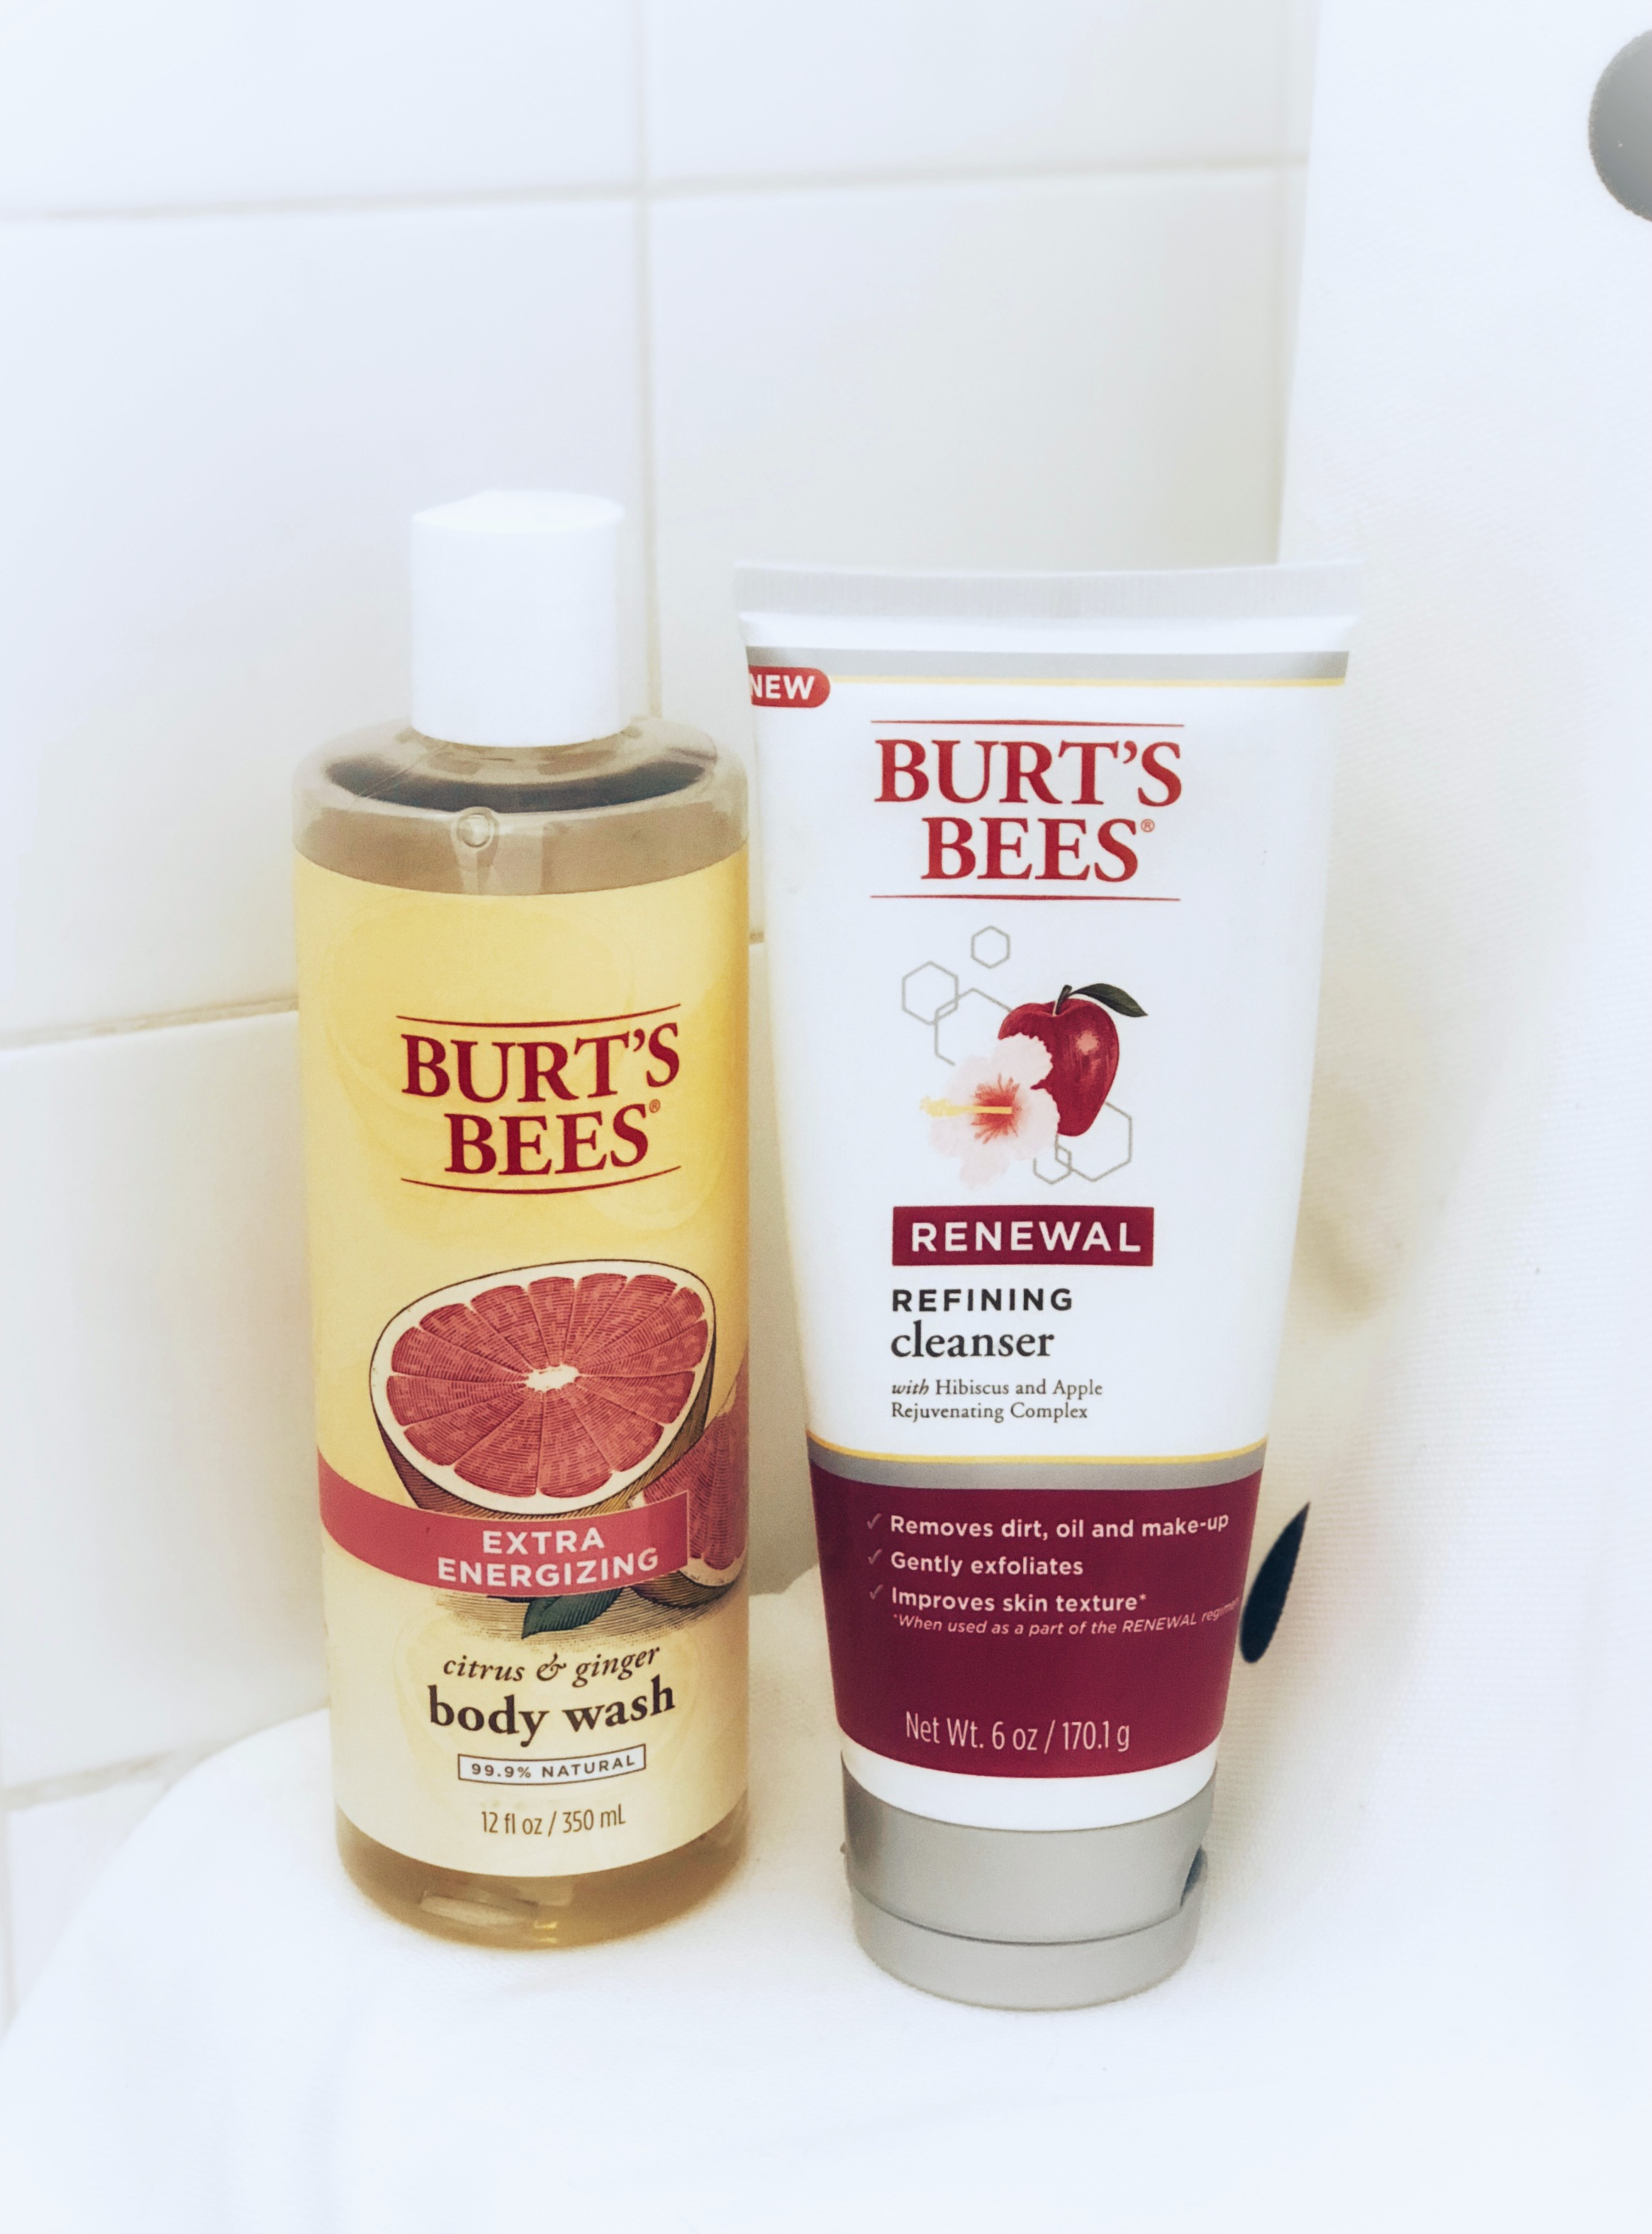 burt's bees body wash and facial cleanser